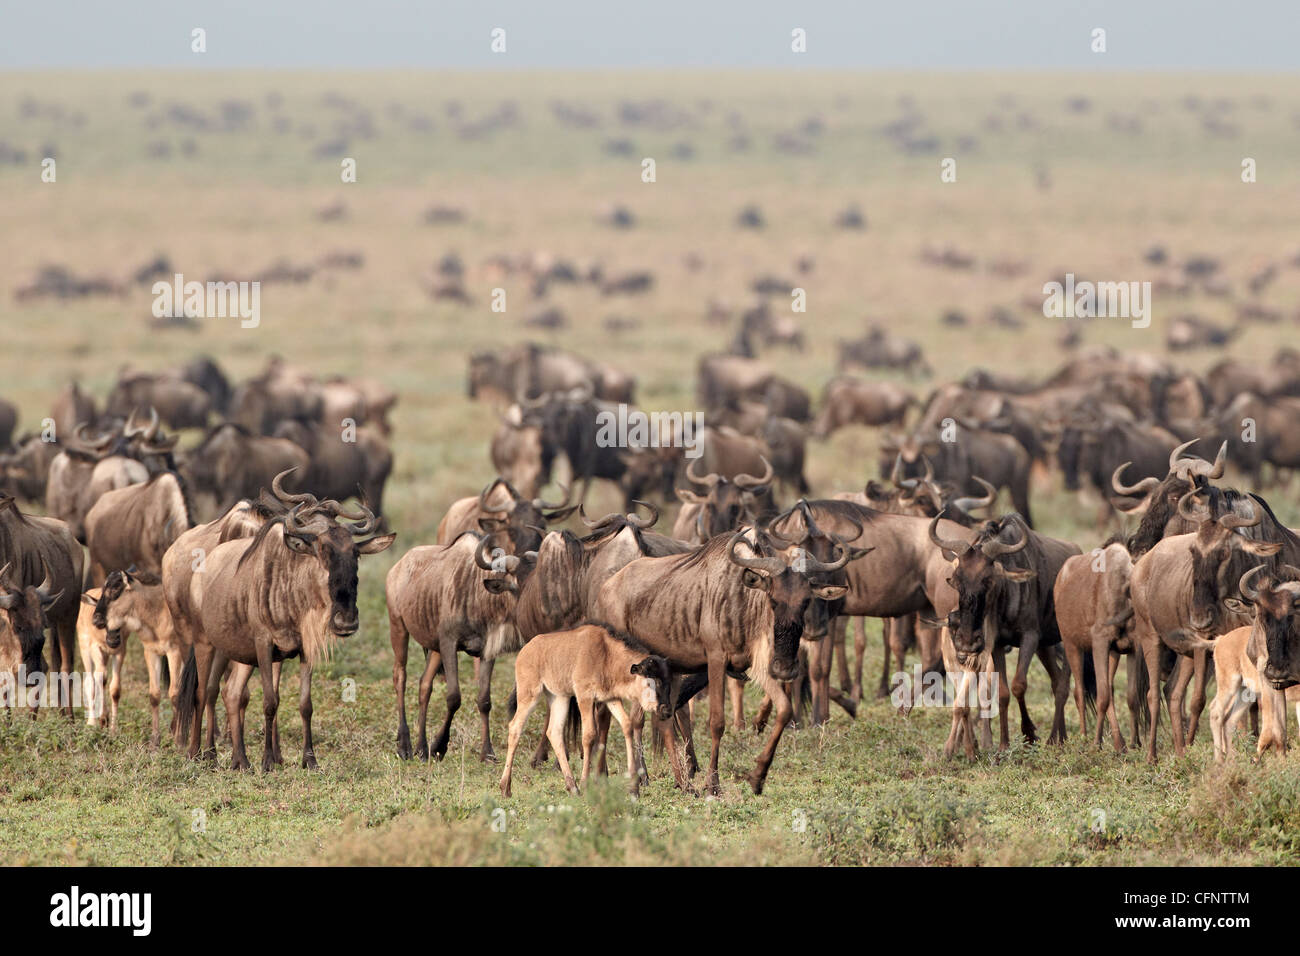 Blue wildebeest (brindled gnu) (Connochaetes taurinus) herd, Serengeti National Park, Tanzania, East Africa, Africa - Stock Image